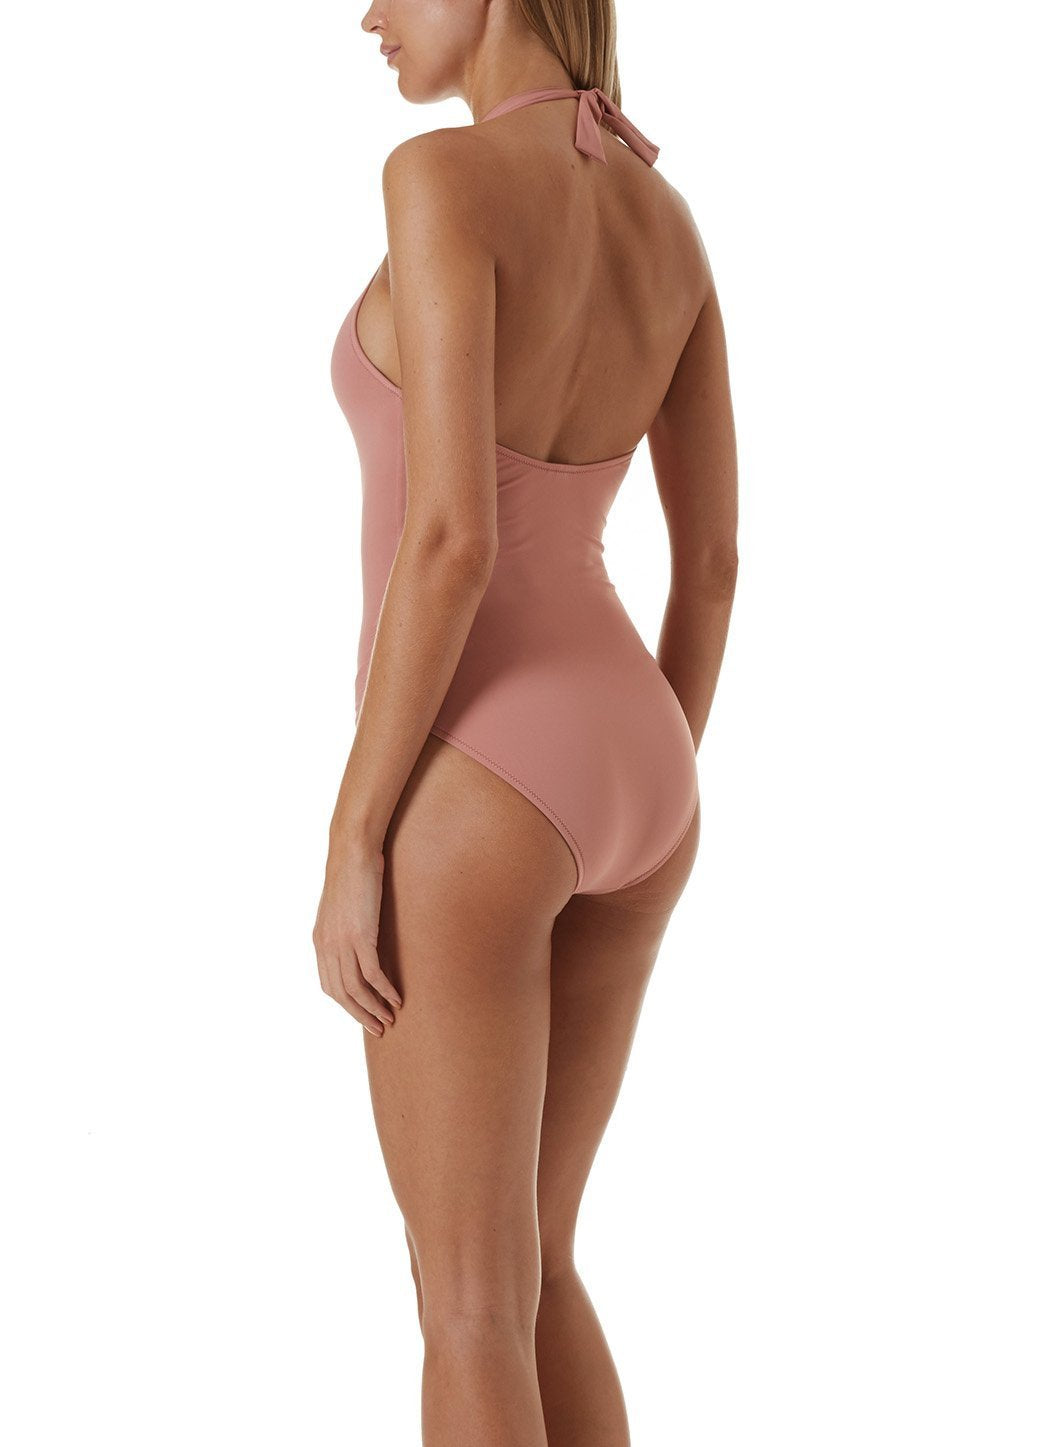 puerto rico dusty rose swimsuit